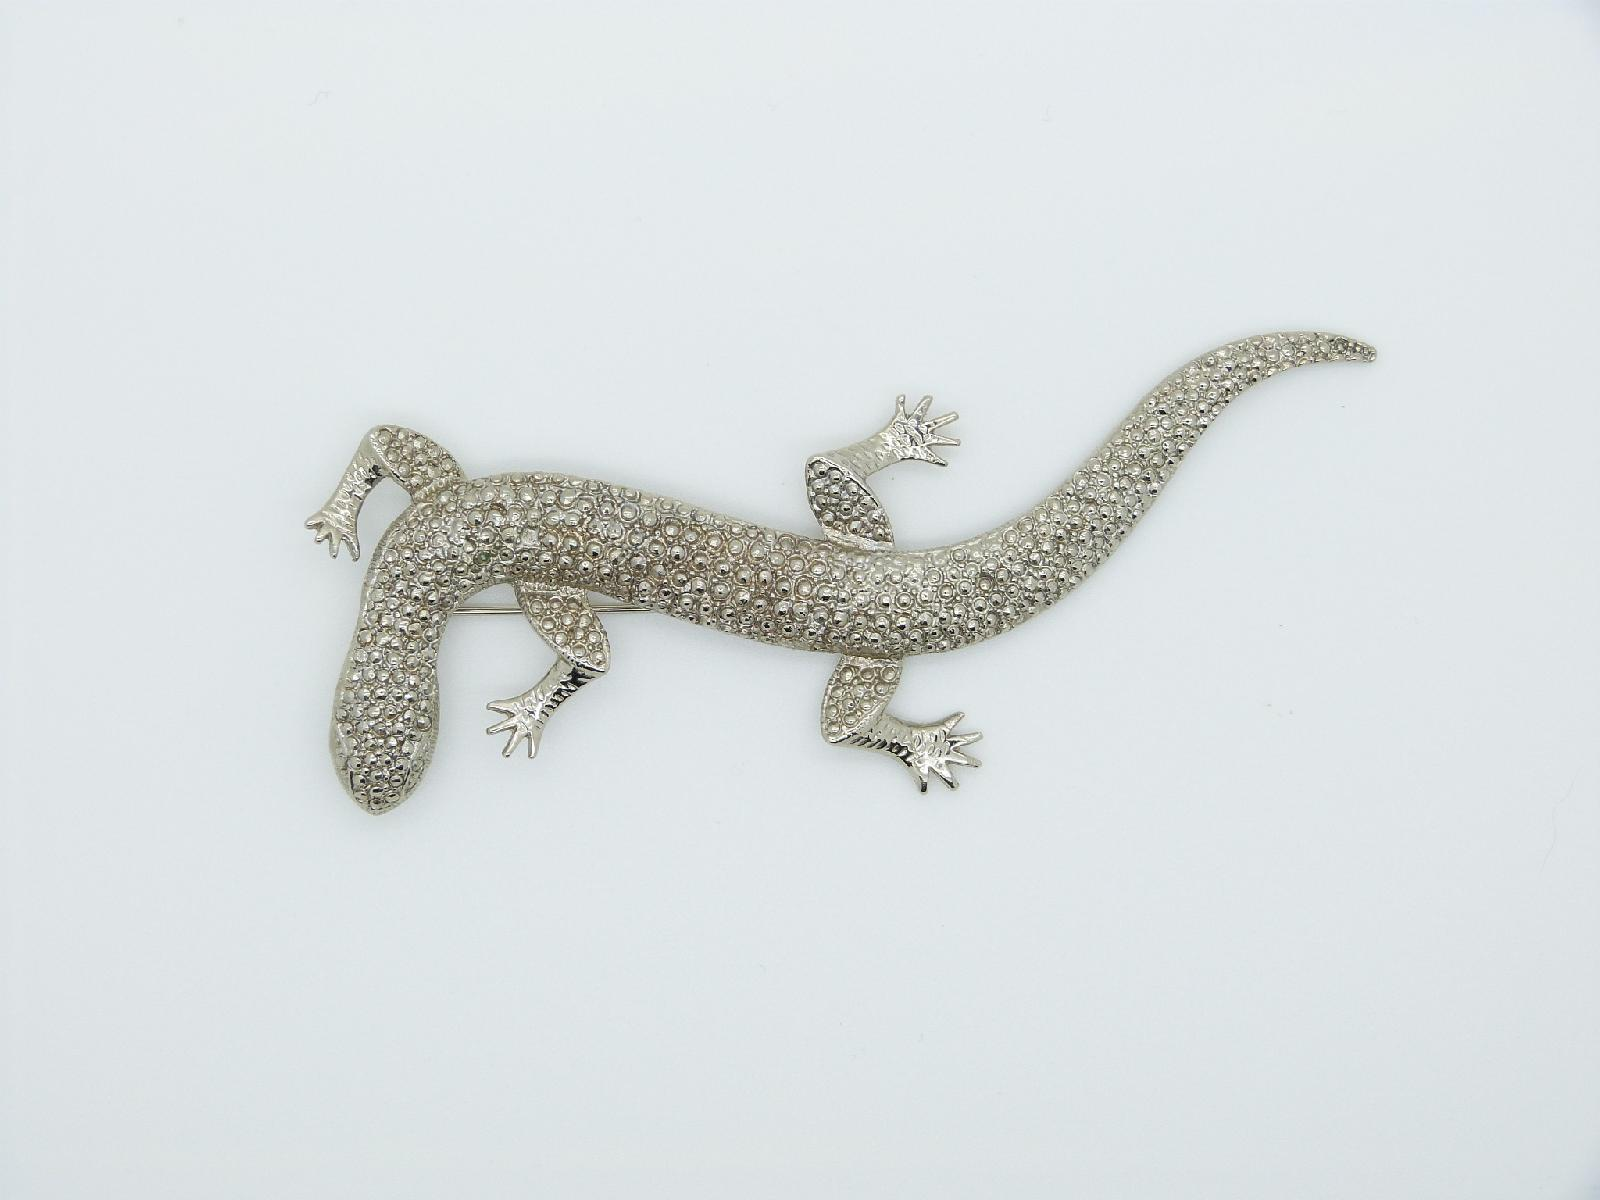 £20.00 - Vintage 50s Large Silvertone Metal Statement Lizard Brooch Amazing 12cms